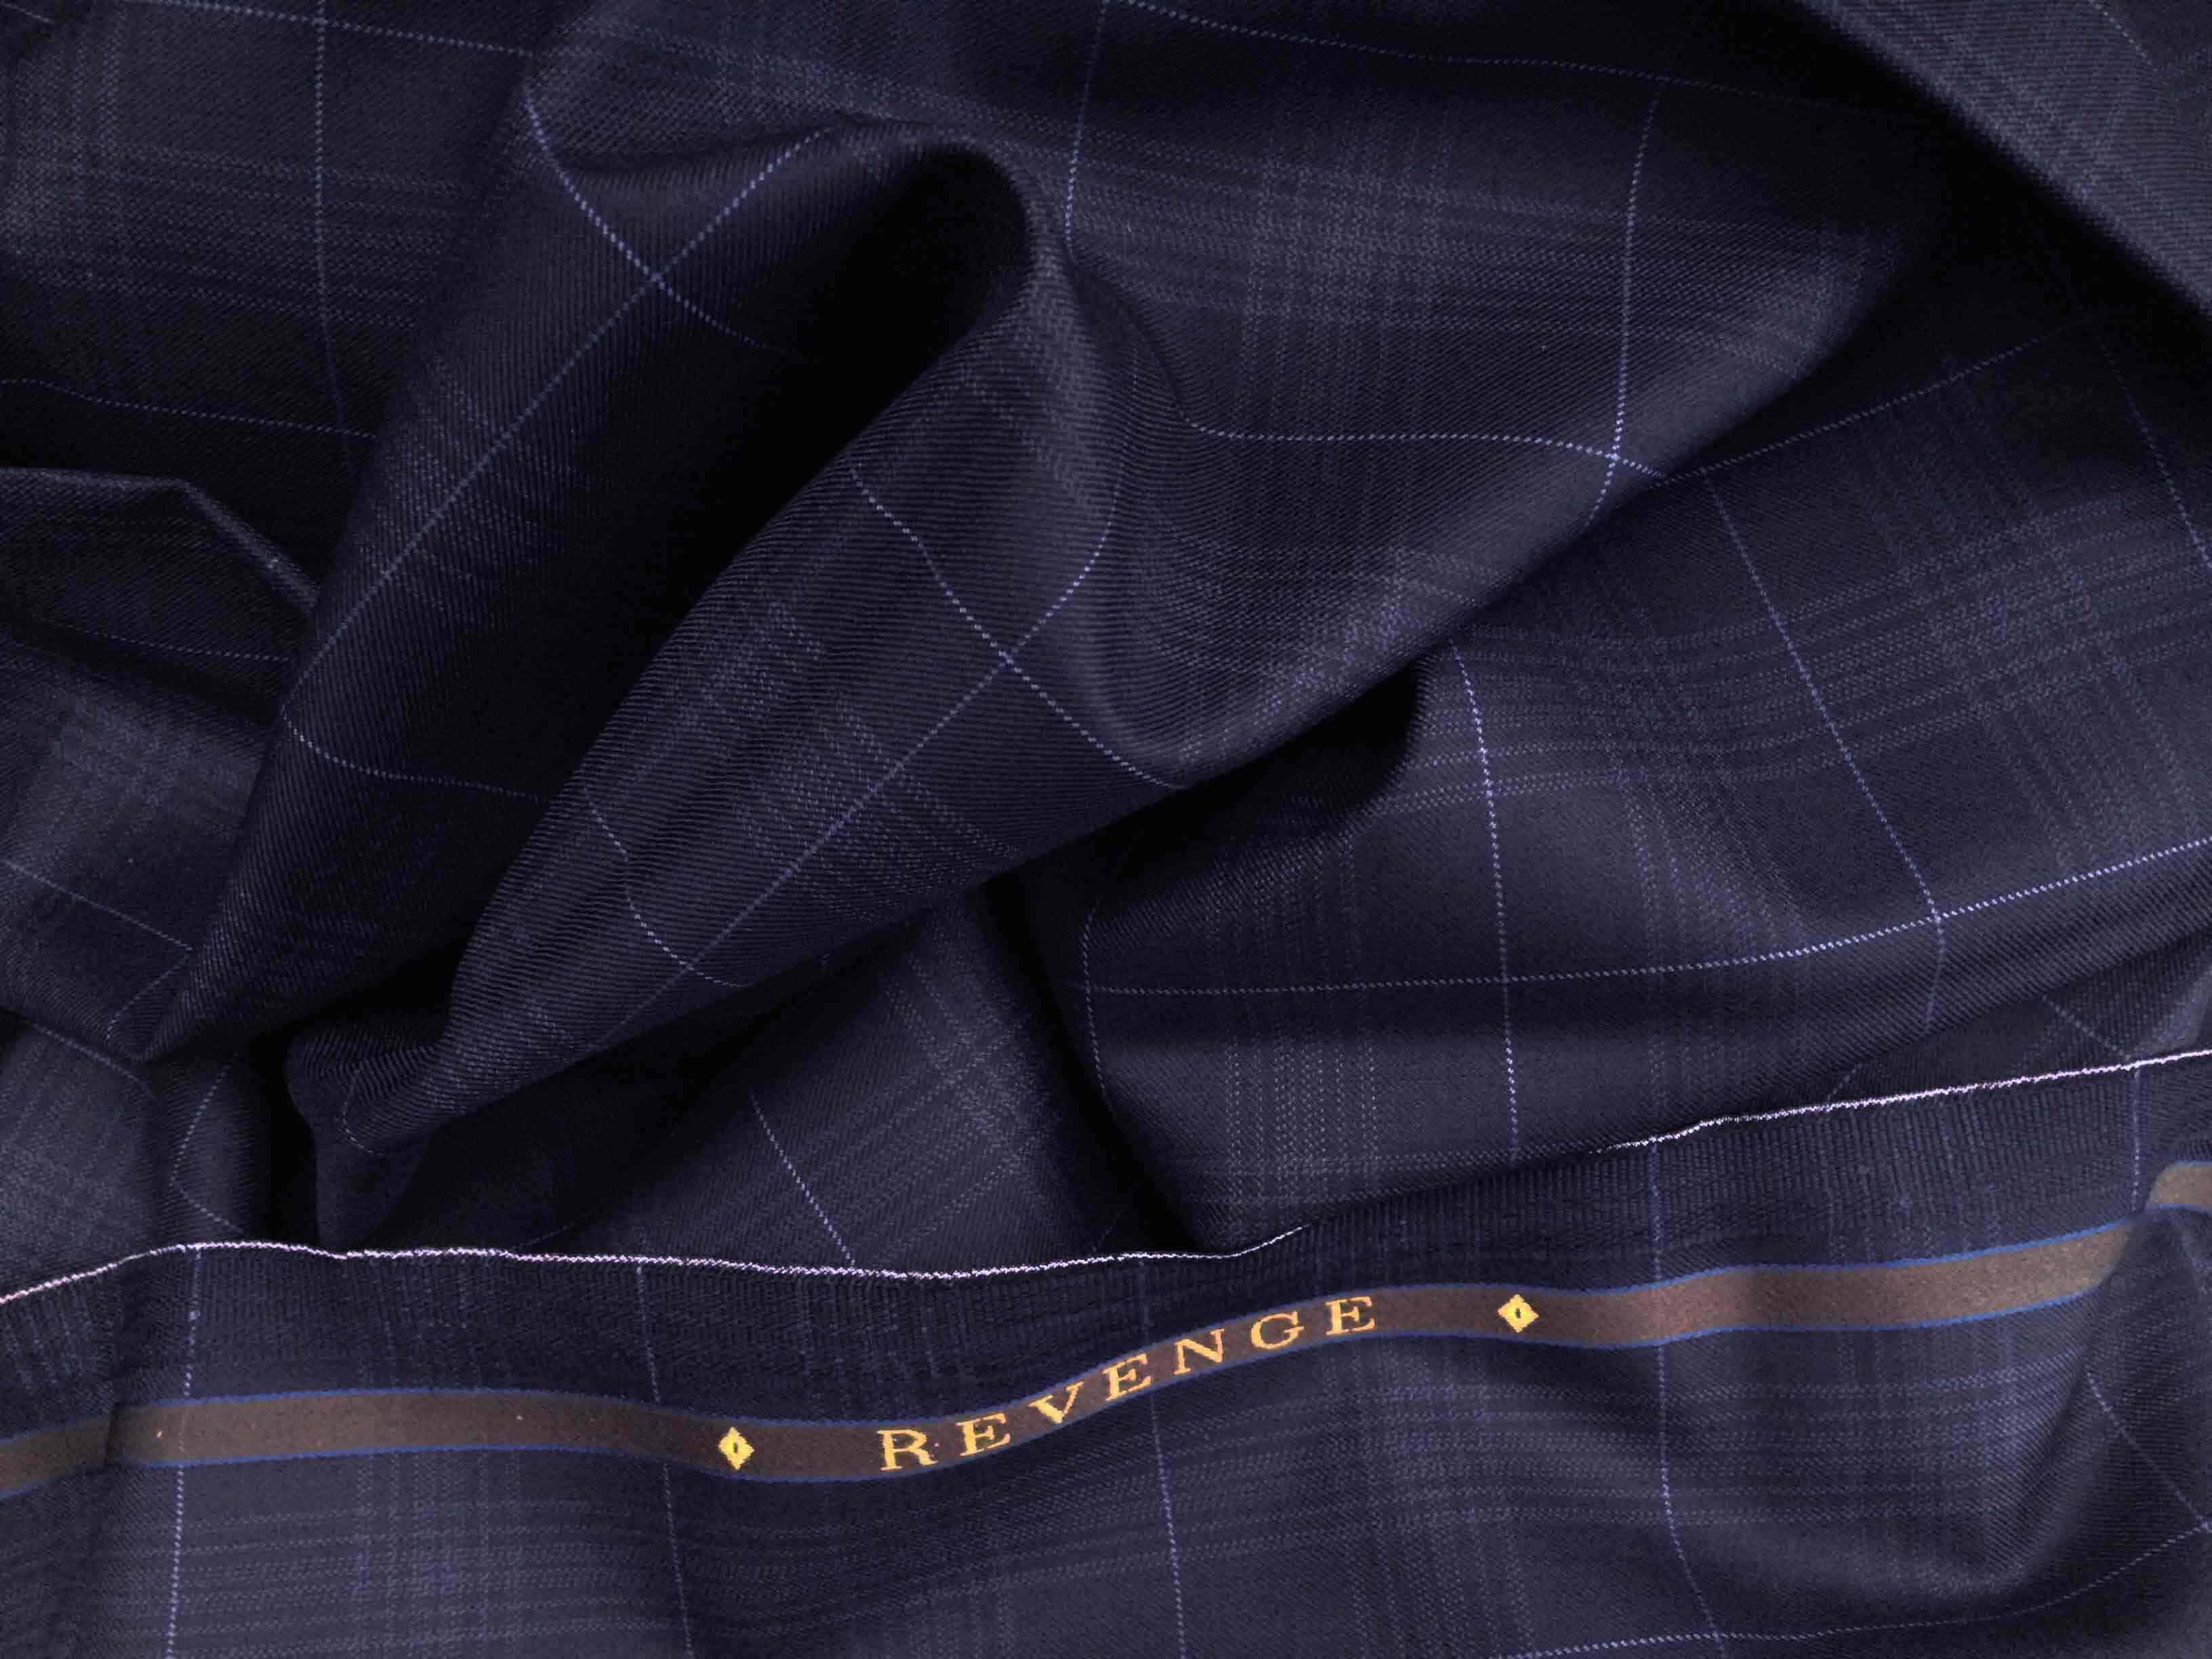 Worsted Wool Suiting Fabric Guide Gentlemans Gazette Ply Conversion Tables Revenge Double Twist In Navy Blue